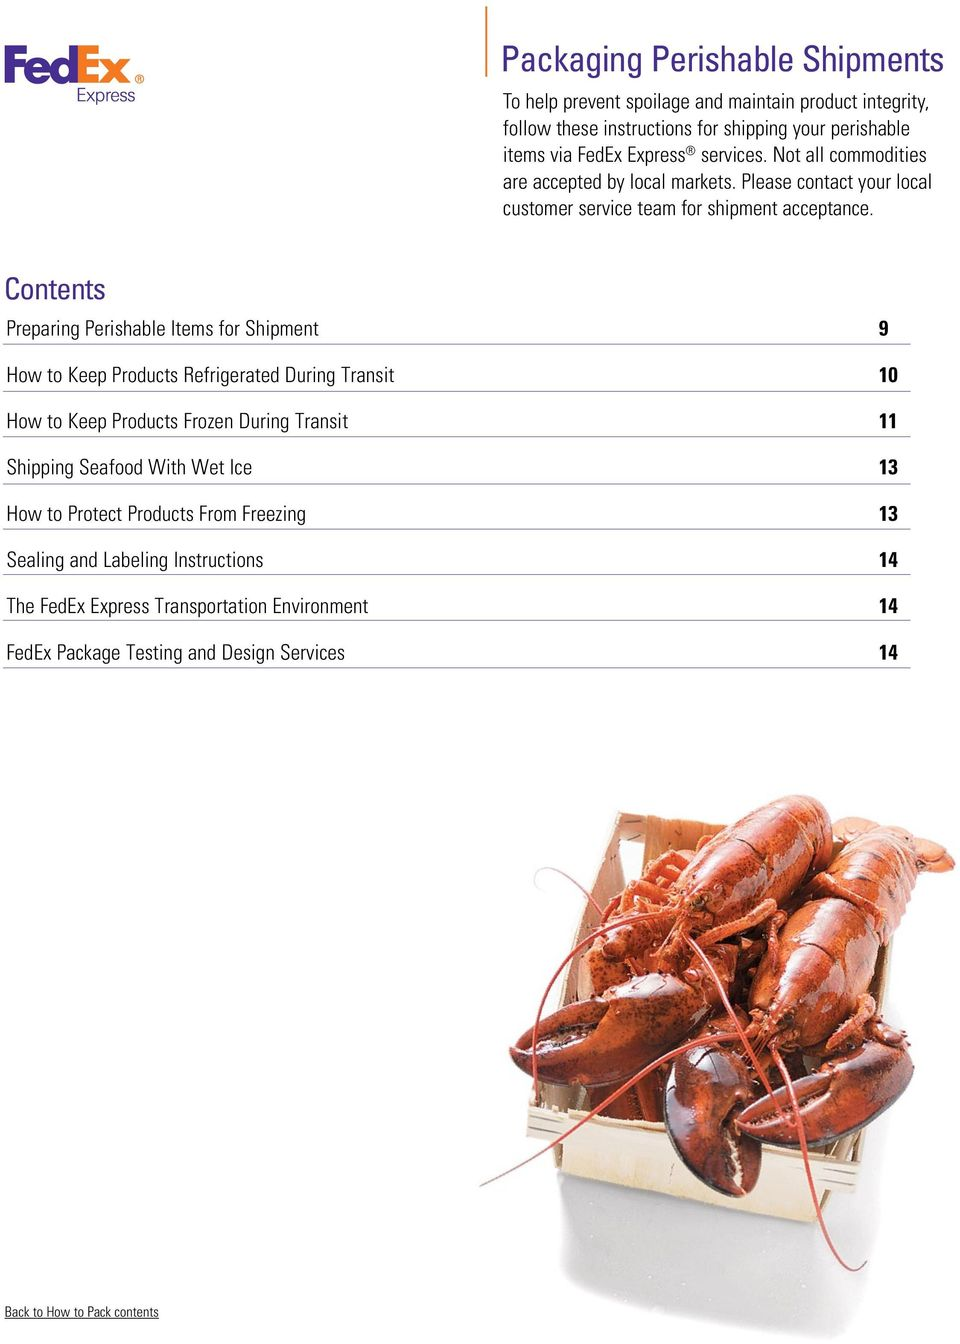 Contents Preparing Perishable Items for Shipment 9 How to Keep Products Refrigerated During Transit 10 How to Keep Products Frozen During Transit 11 Shipping Seafood With